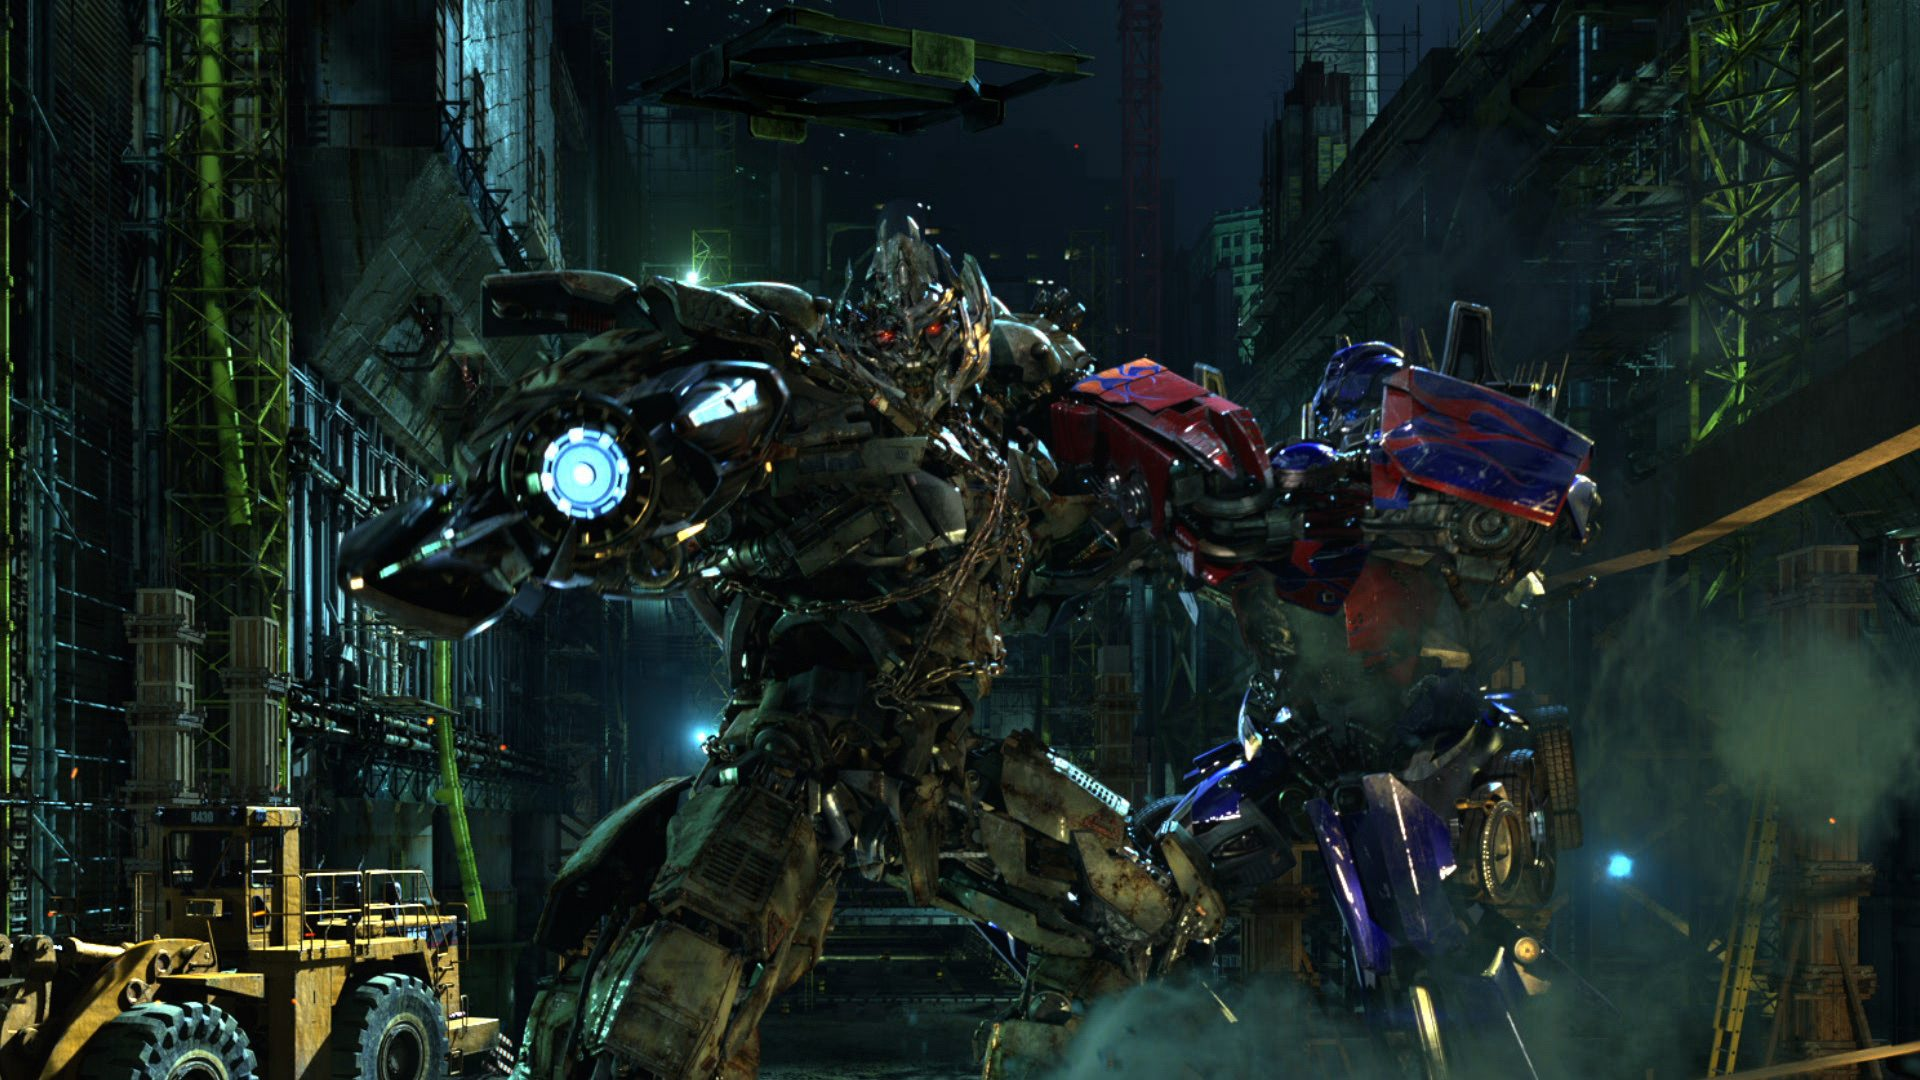 Optimus Prime and Megatron battle it out  Image courtesy of Unviersal Orlando